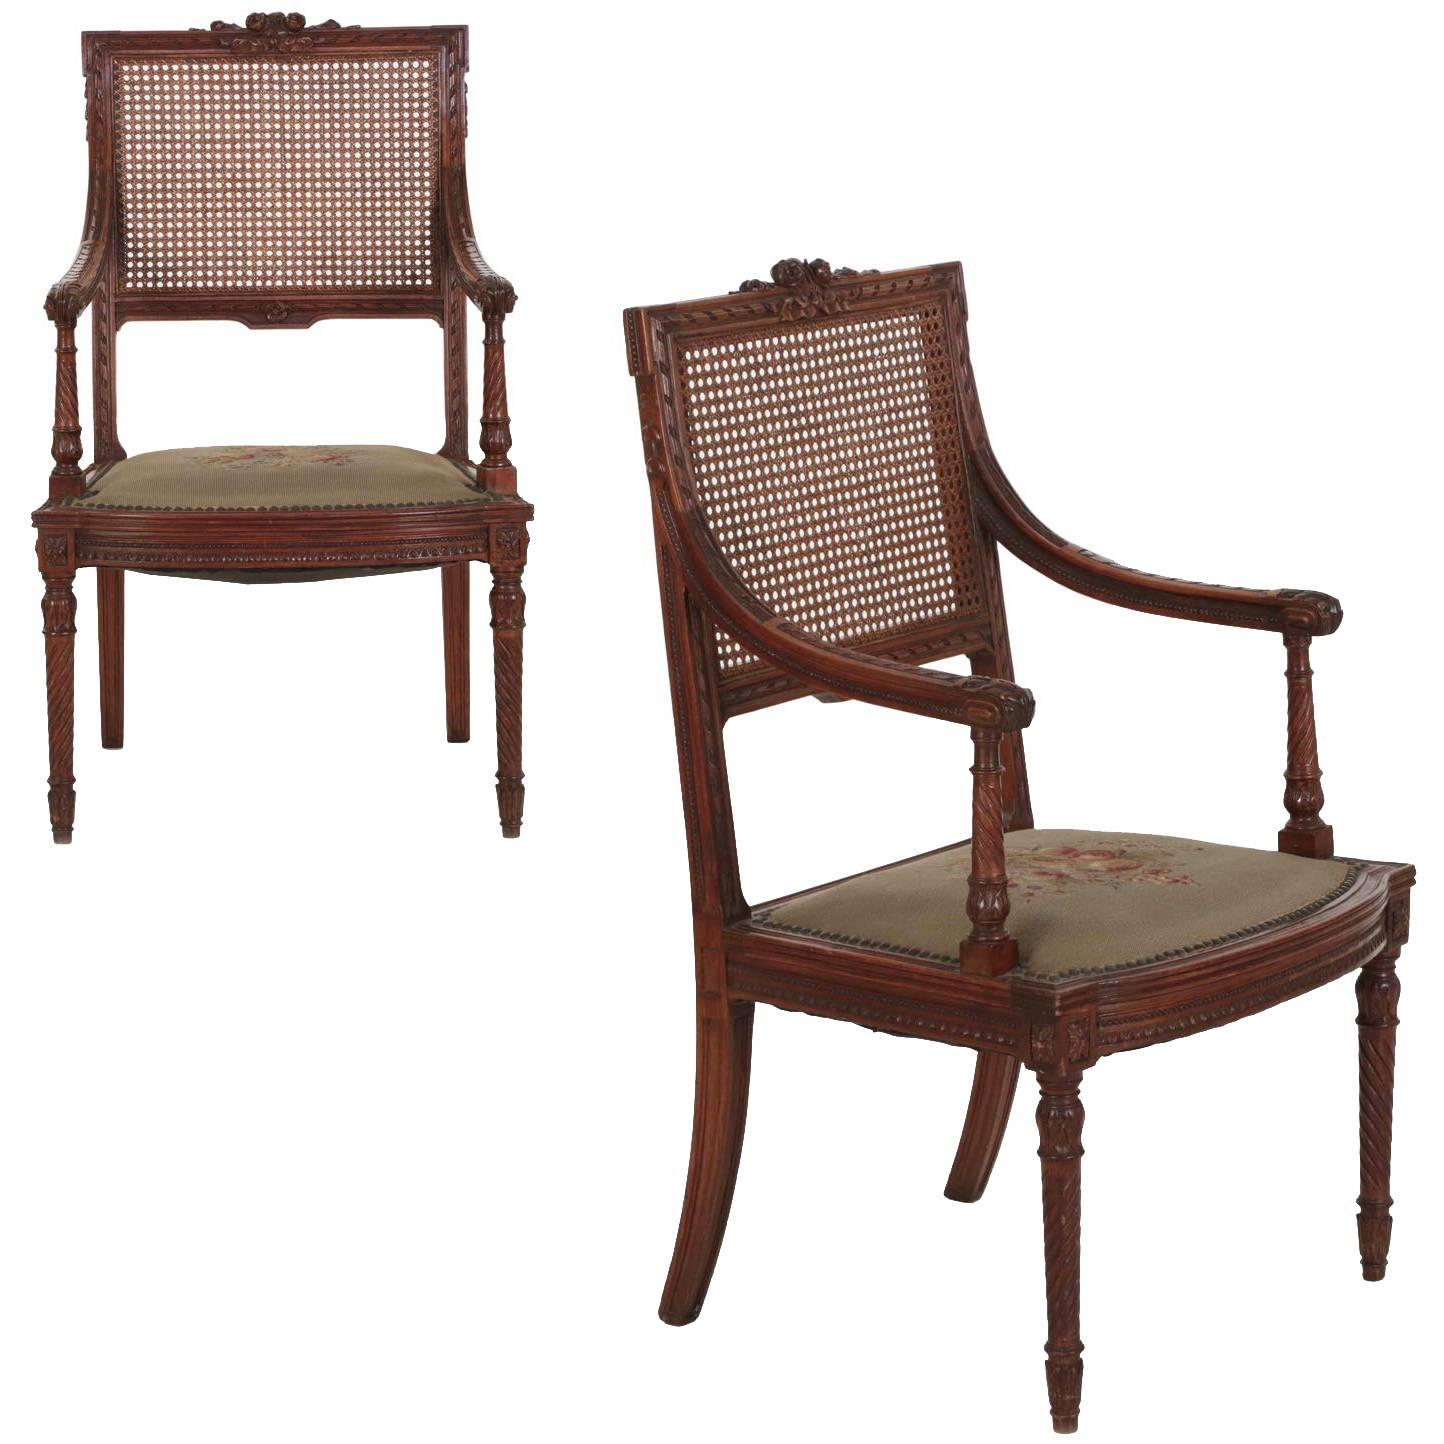 Pair Of French, Louis XVI Style Carved Walnut Antique Armchairs, Circa 1890  For Sale